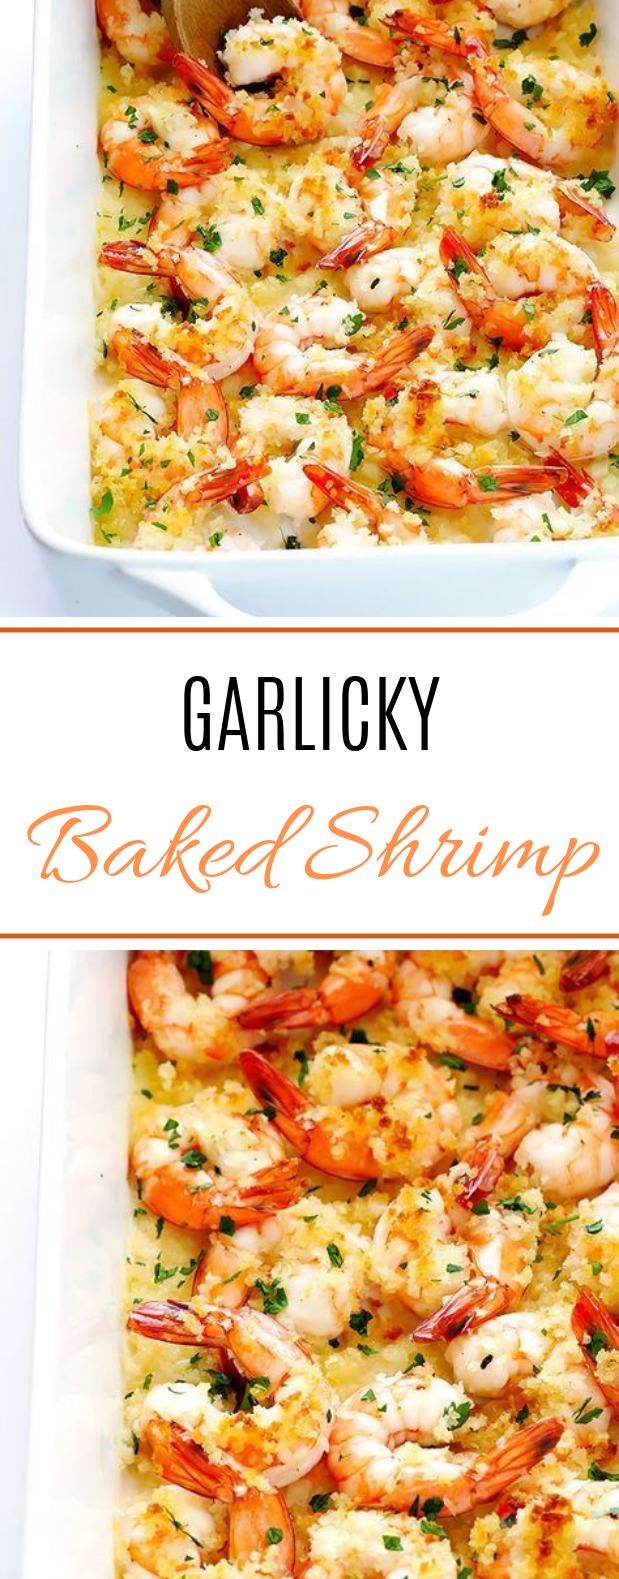 Garlicky Baked Shrimp #delicious #seafood